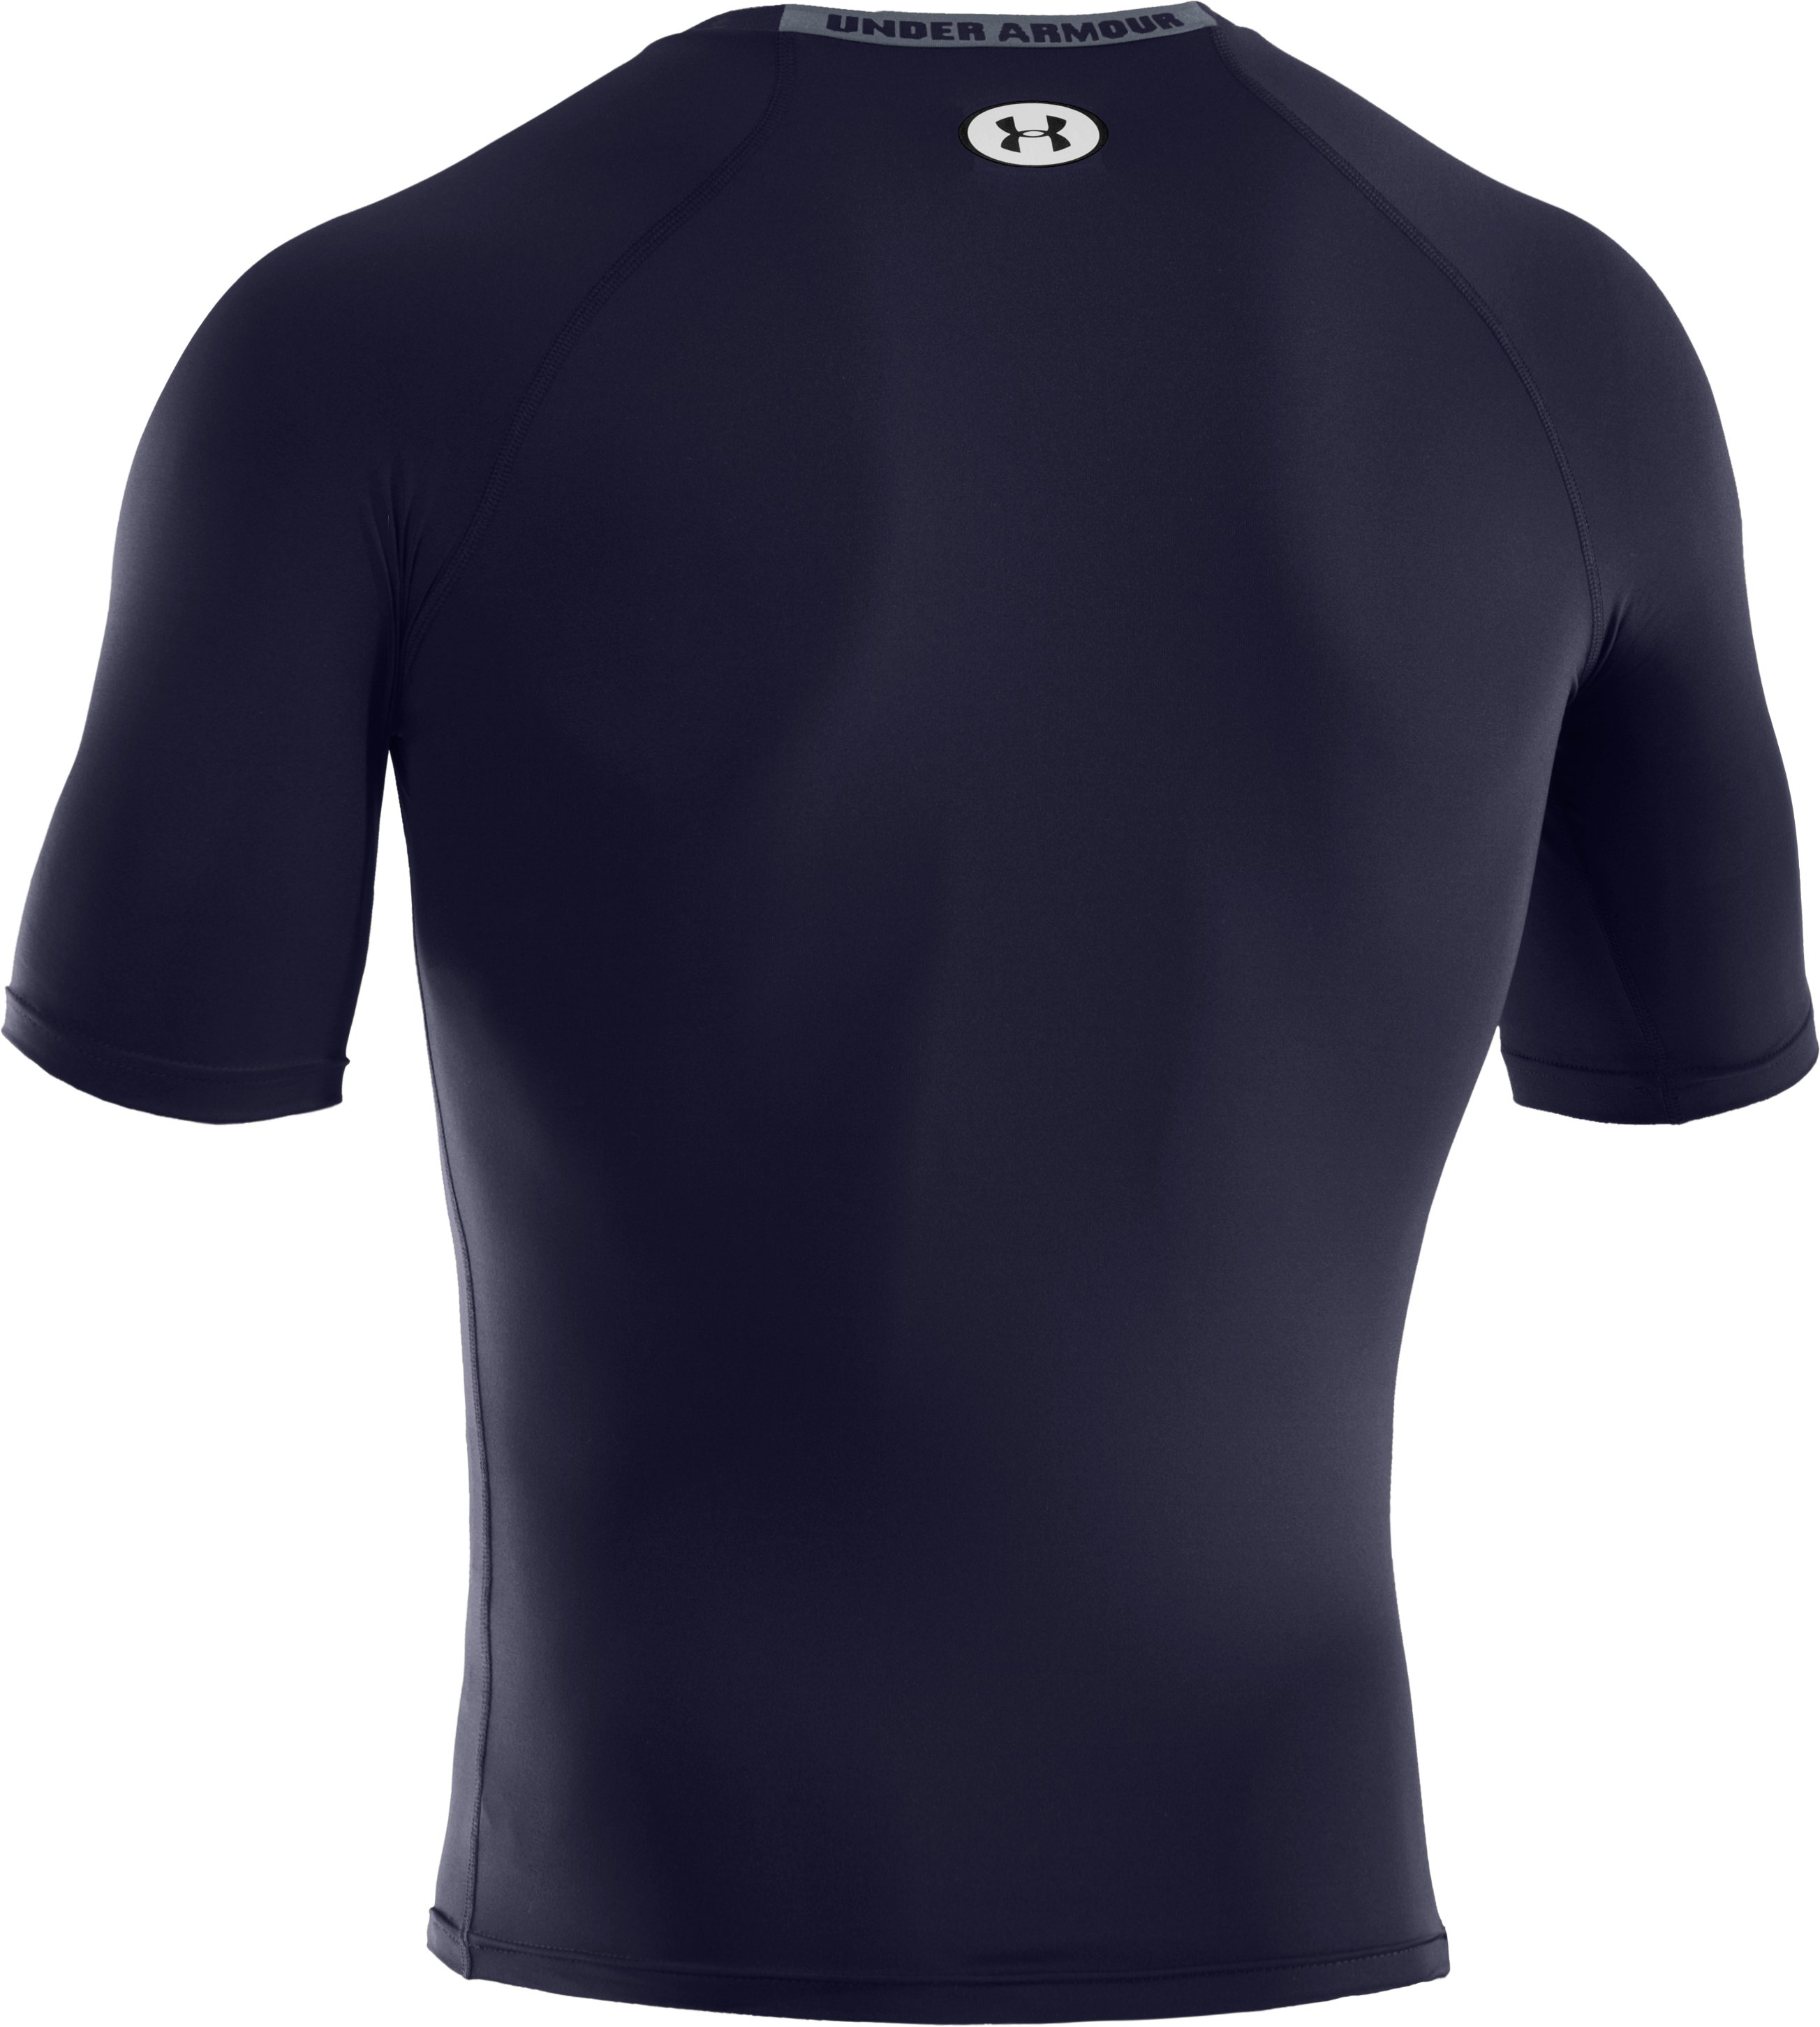 Men's HeatGear® Sonic Compression Half Sleeve, Midnight Navy, undefined